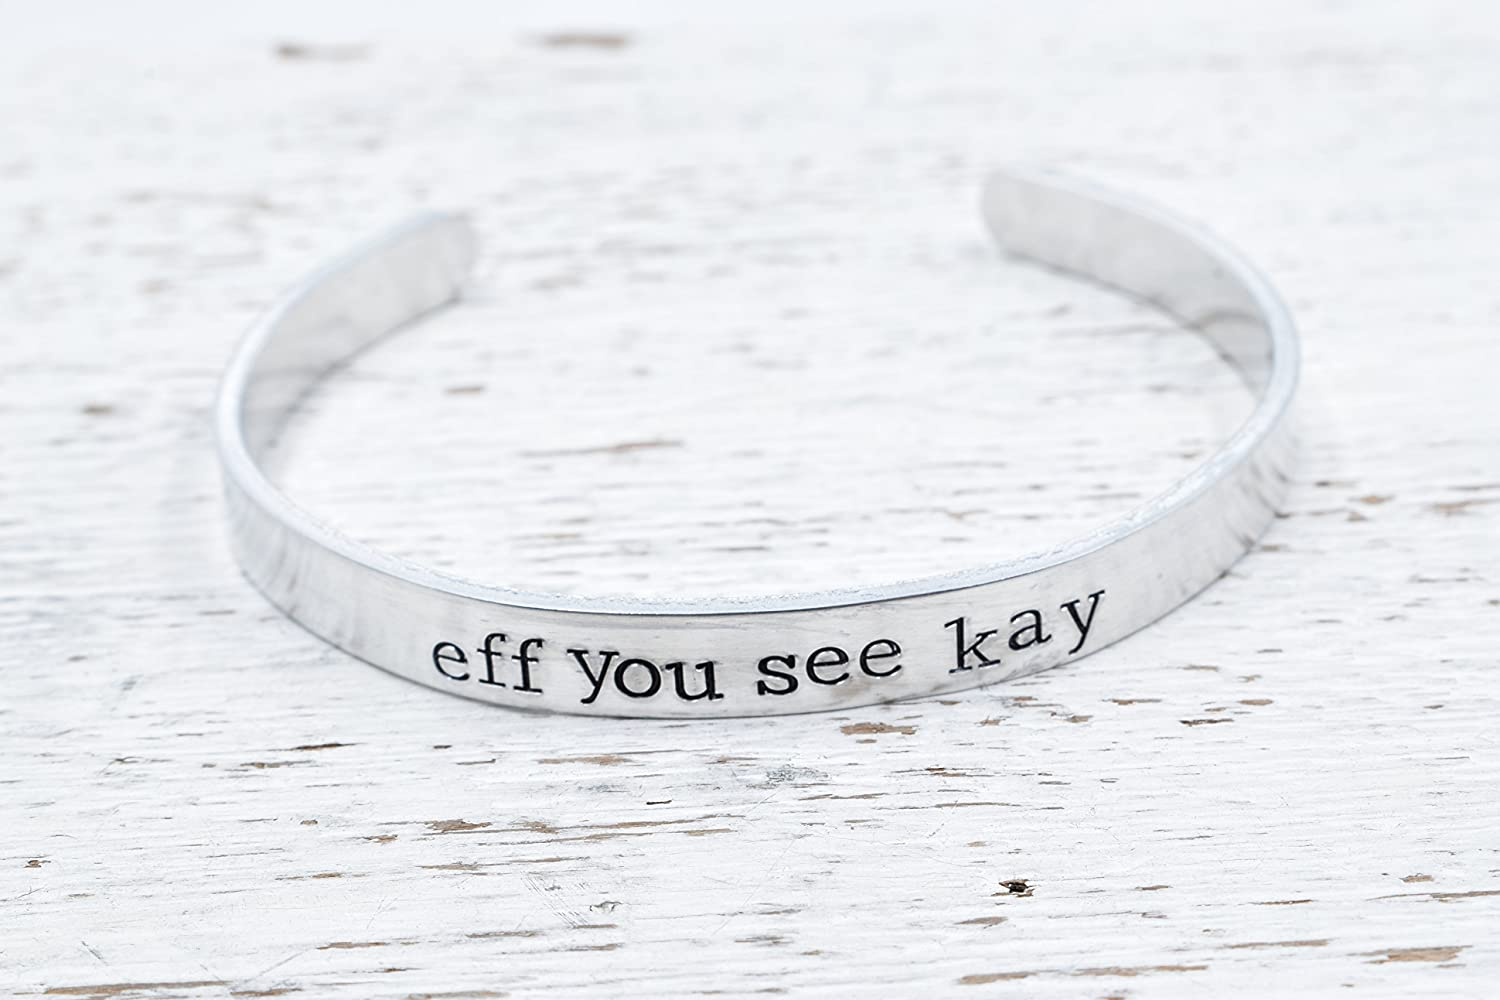 Eff you see kay bracelet Hand stamped